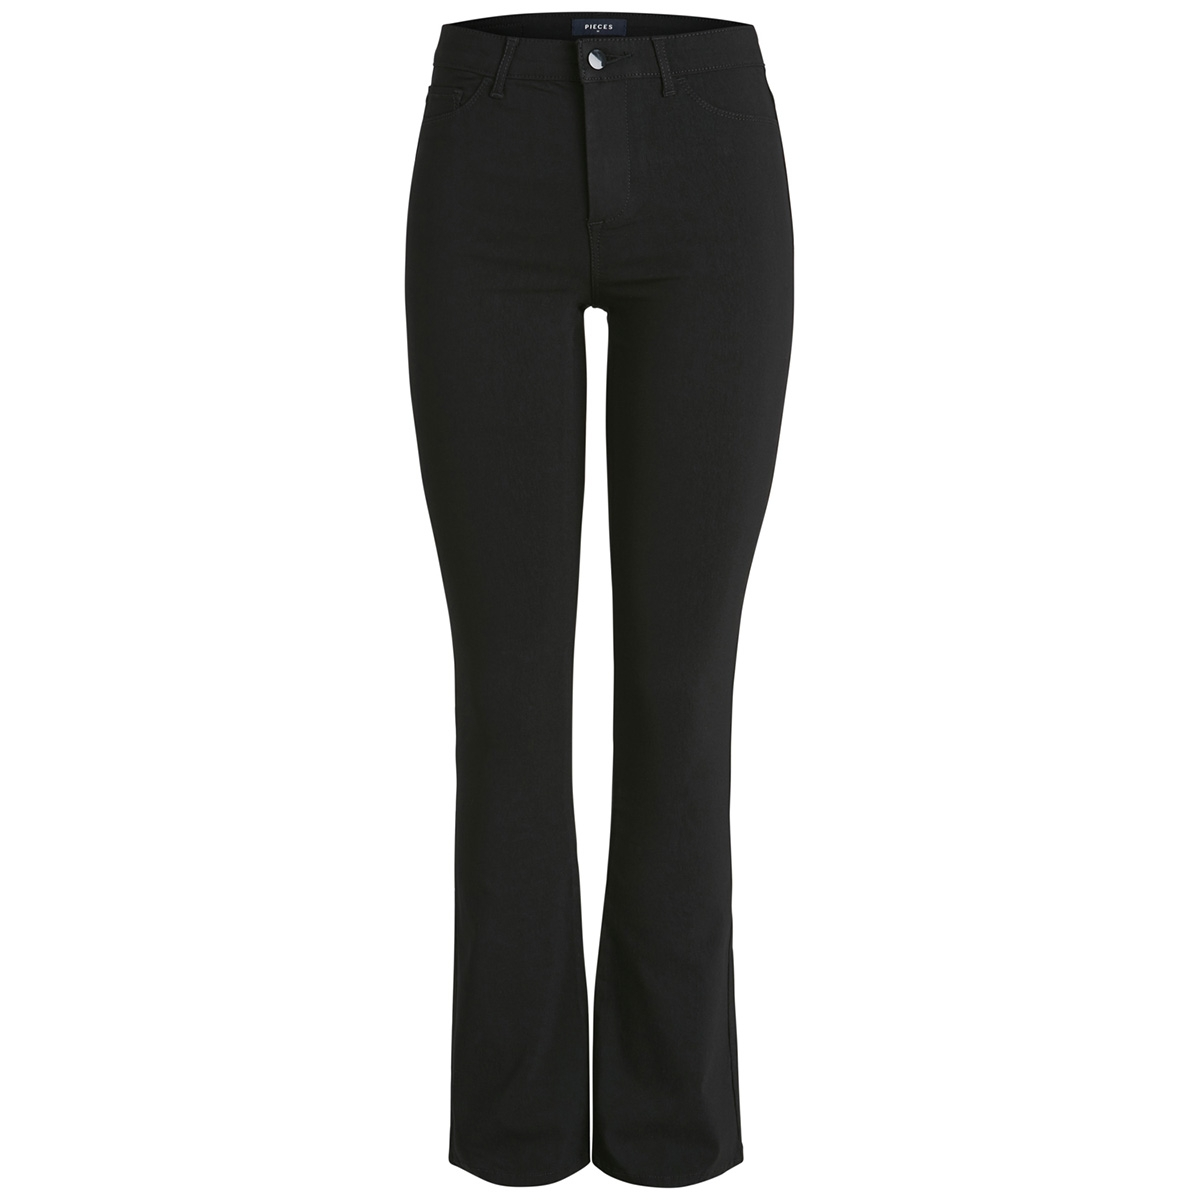 pcskin flared mw pant-cy 17092884 pieces jeans black